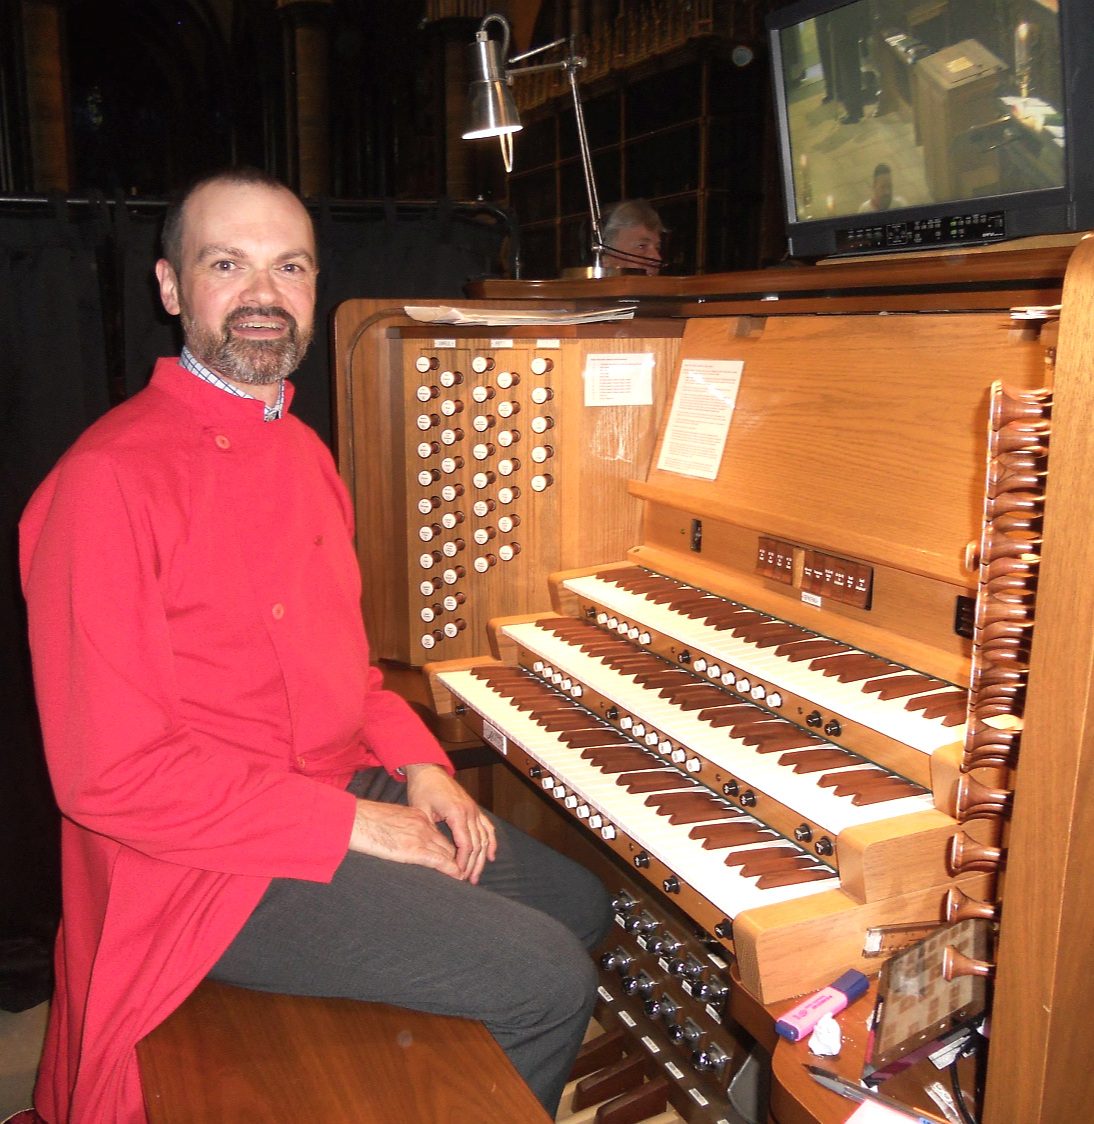 The Director of Music at the Organ Console in Salisbury Cathedral